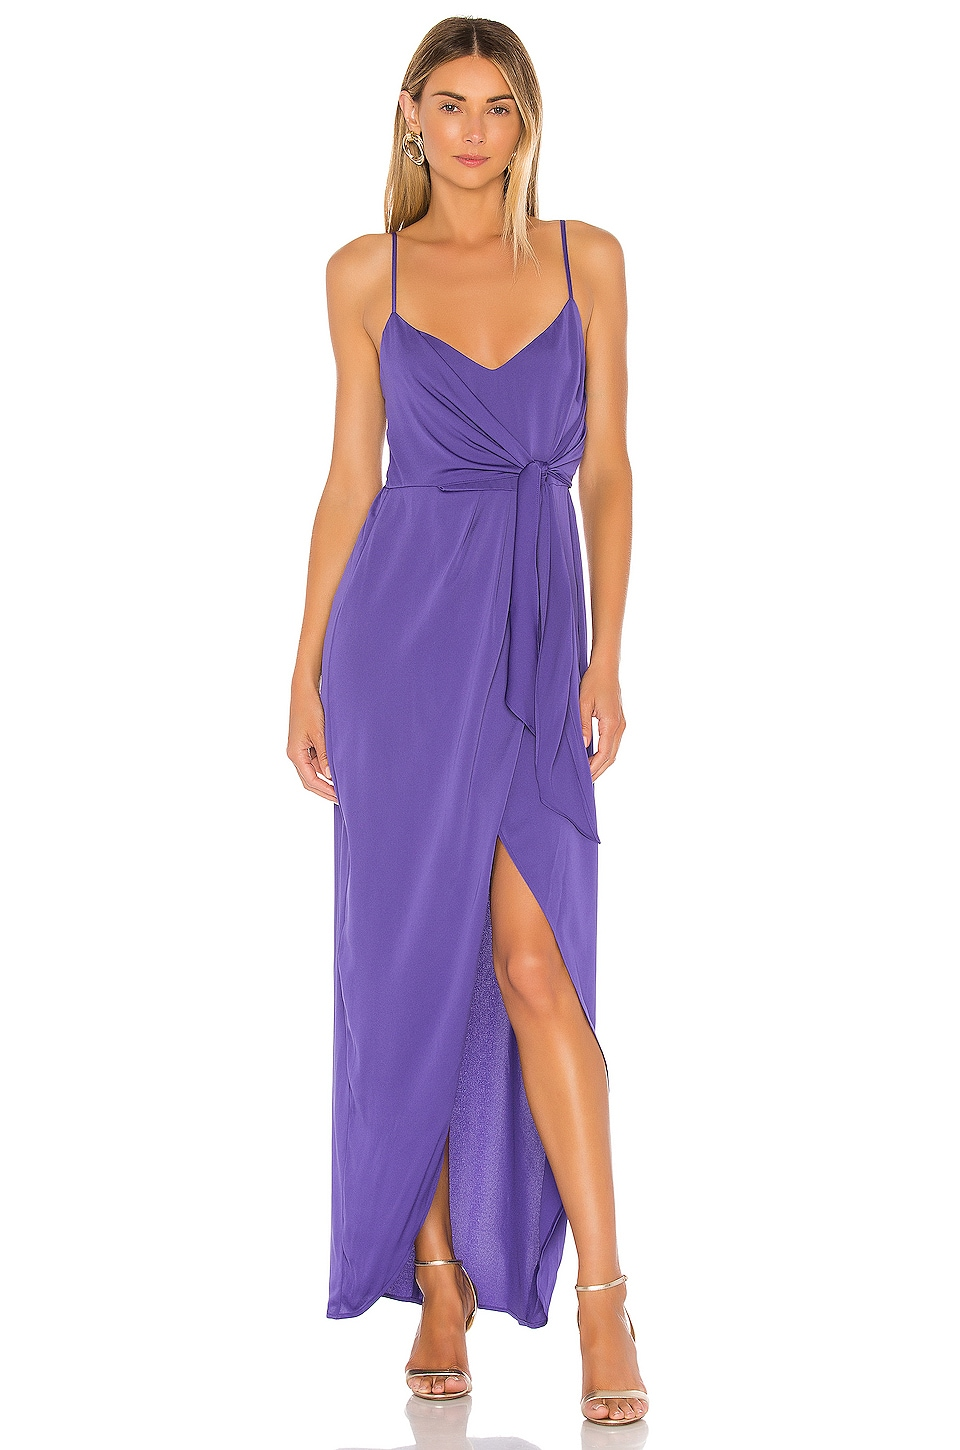 Tie Wrap Maxi Dress             BCBGeneration                                                                                                                                         Sale price:                                                                       CA$ 77.12                                                                                                  Previous price:                                                                       CA$ 170.20 4